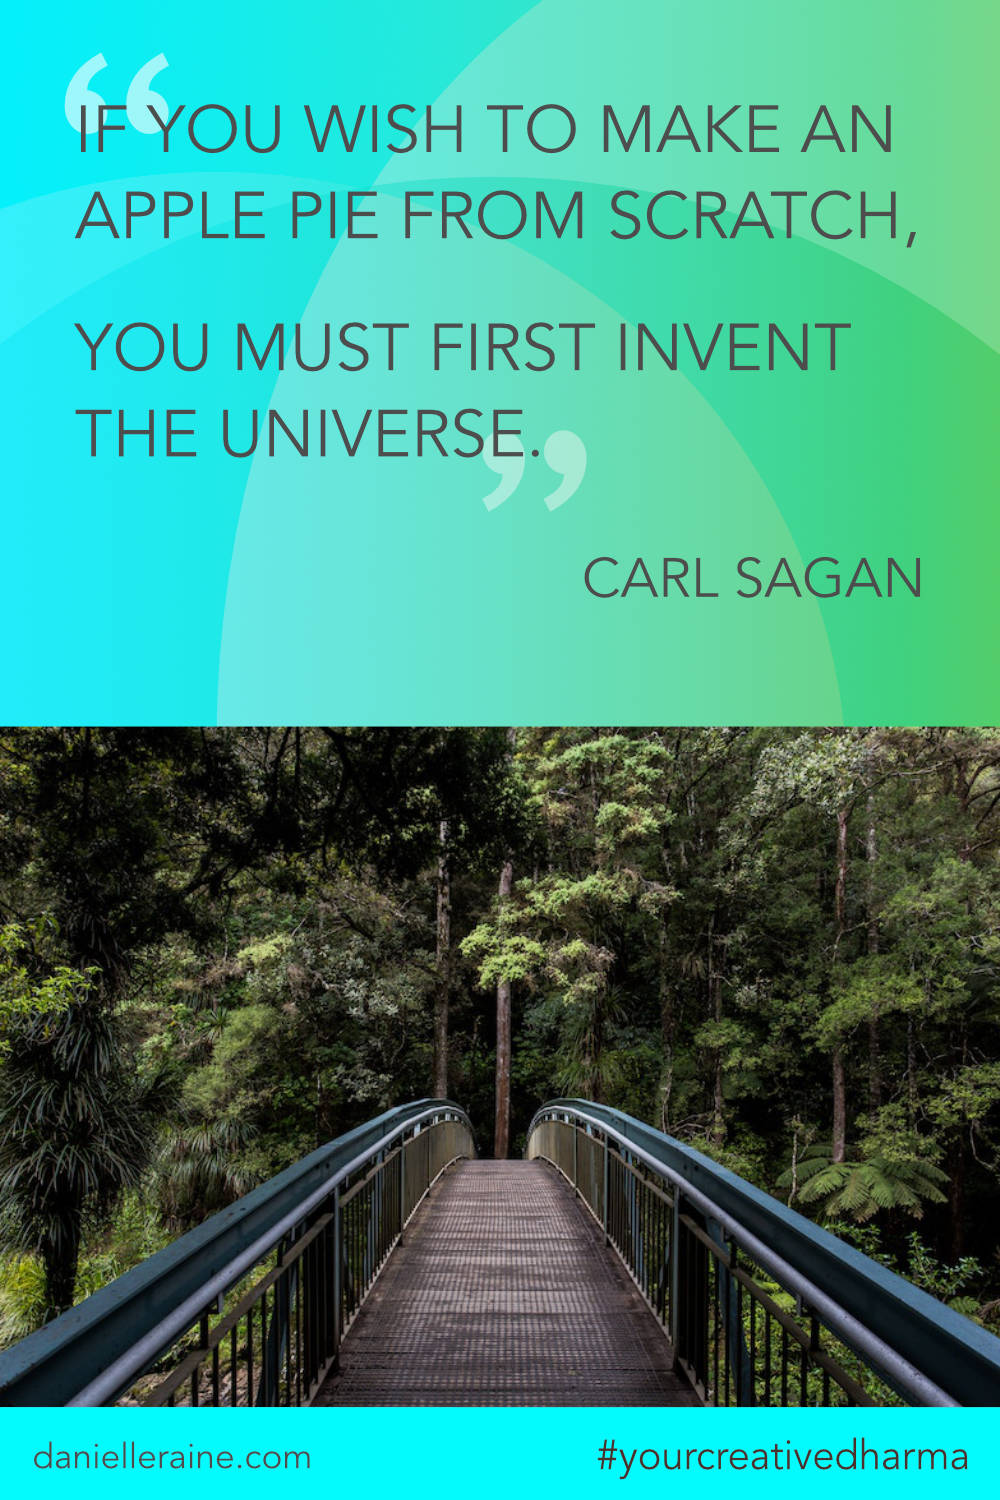 Your Creative Dharma quote carl sagan apple pie quote